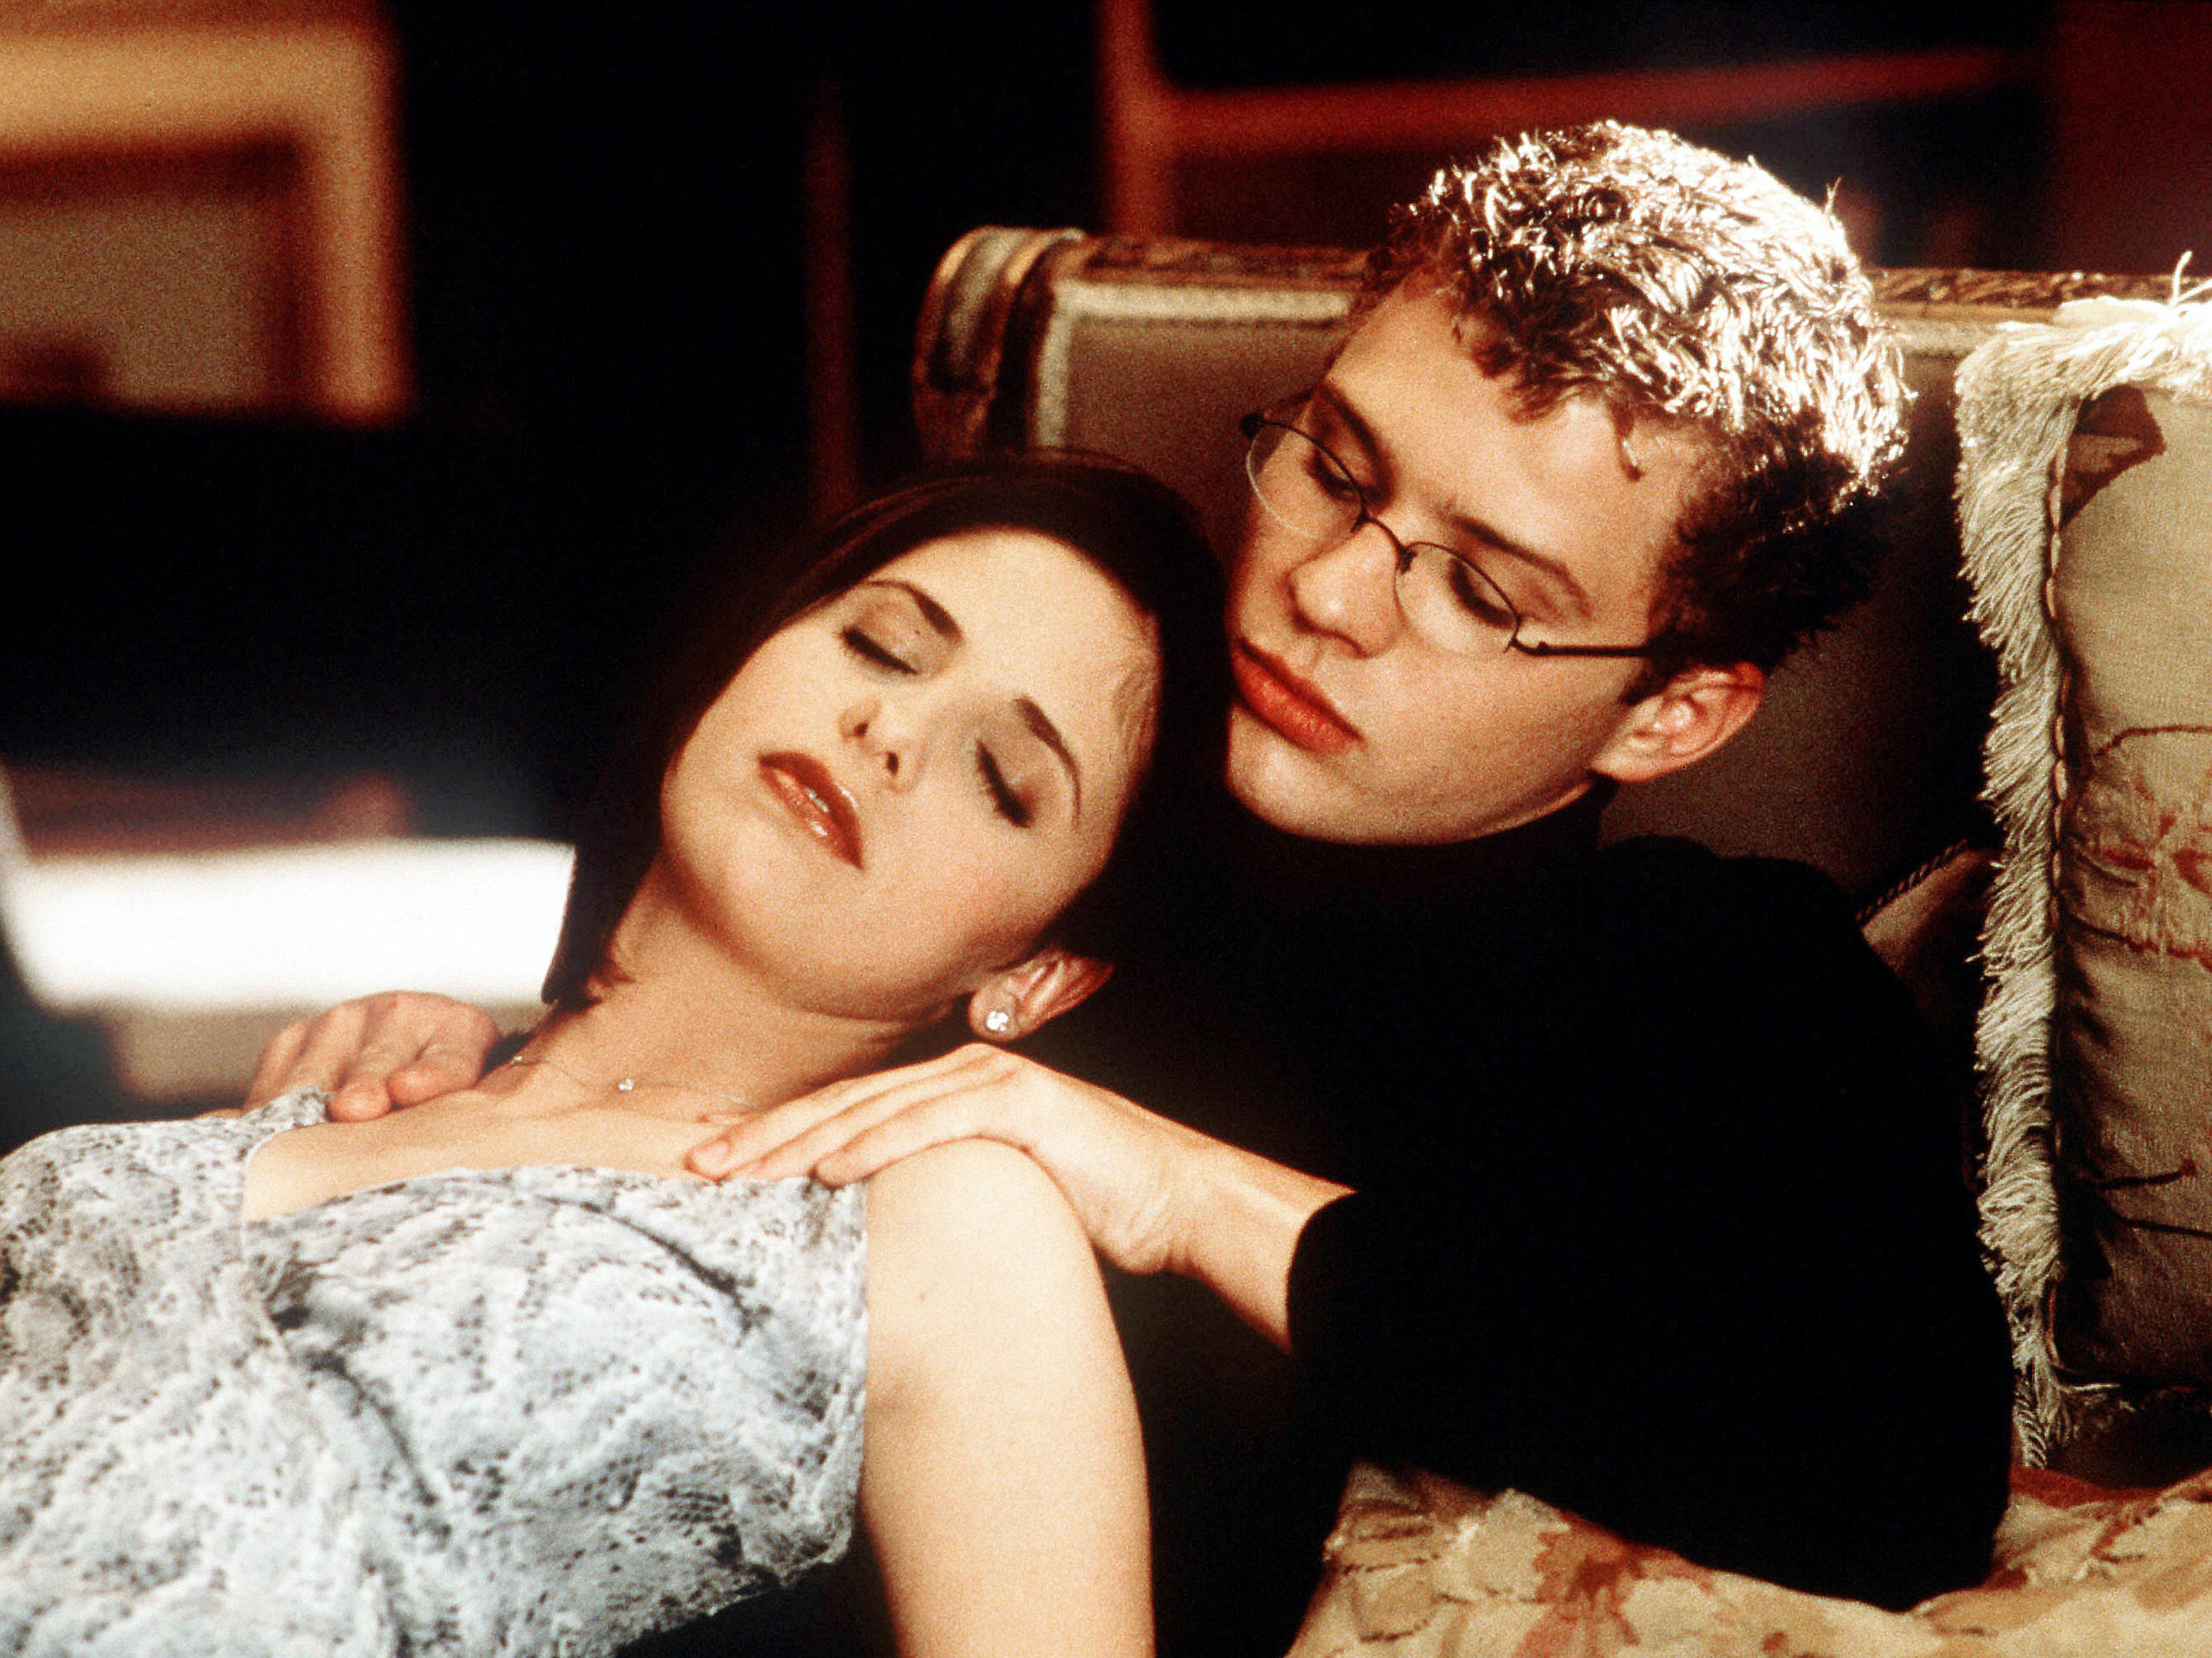 Sarah Michelle Gellar and Ryan Phillippe play sex-obsessed step siblings in 'Cruel Intentions'